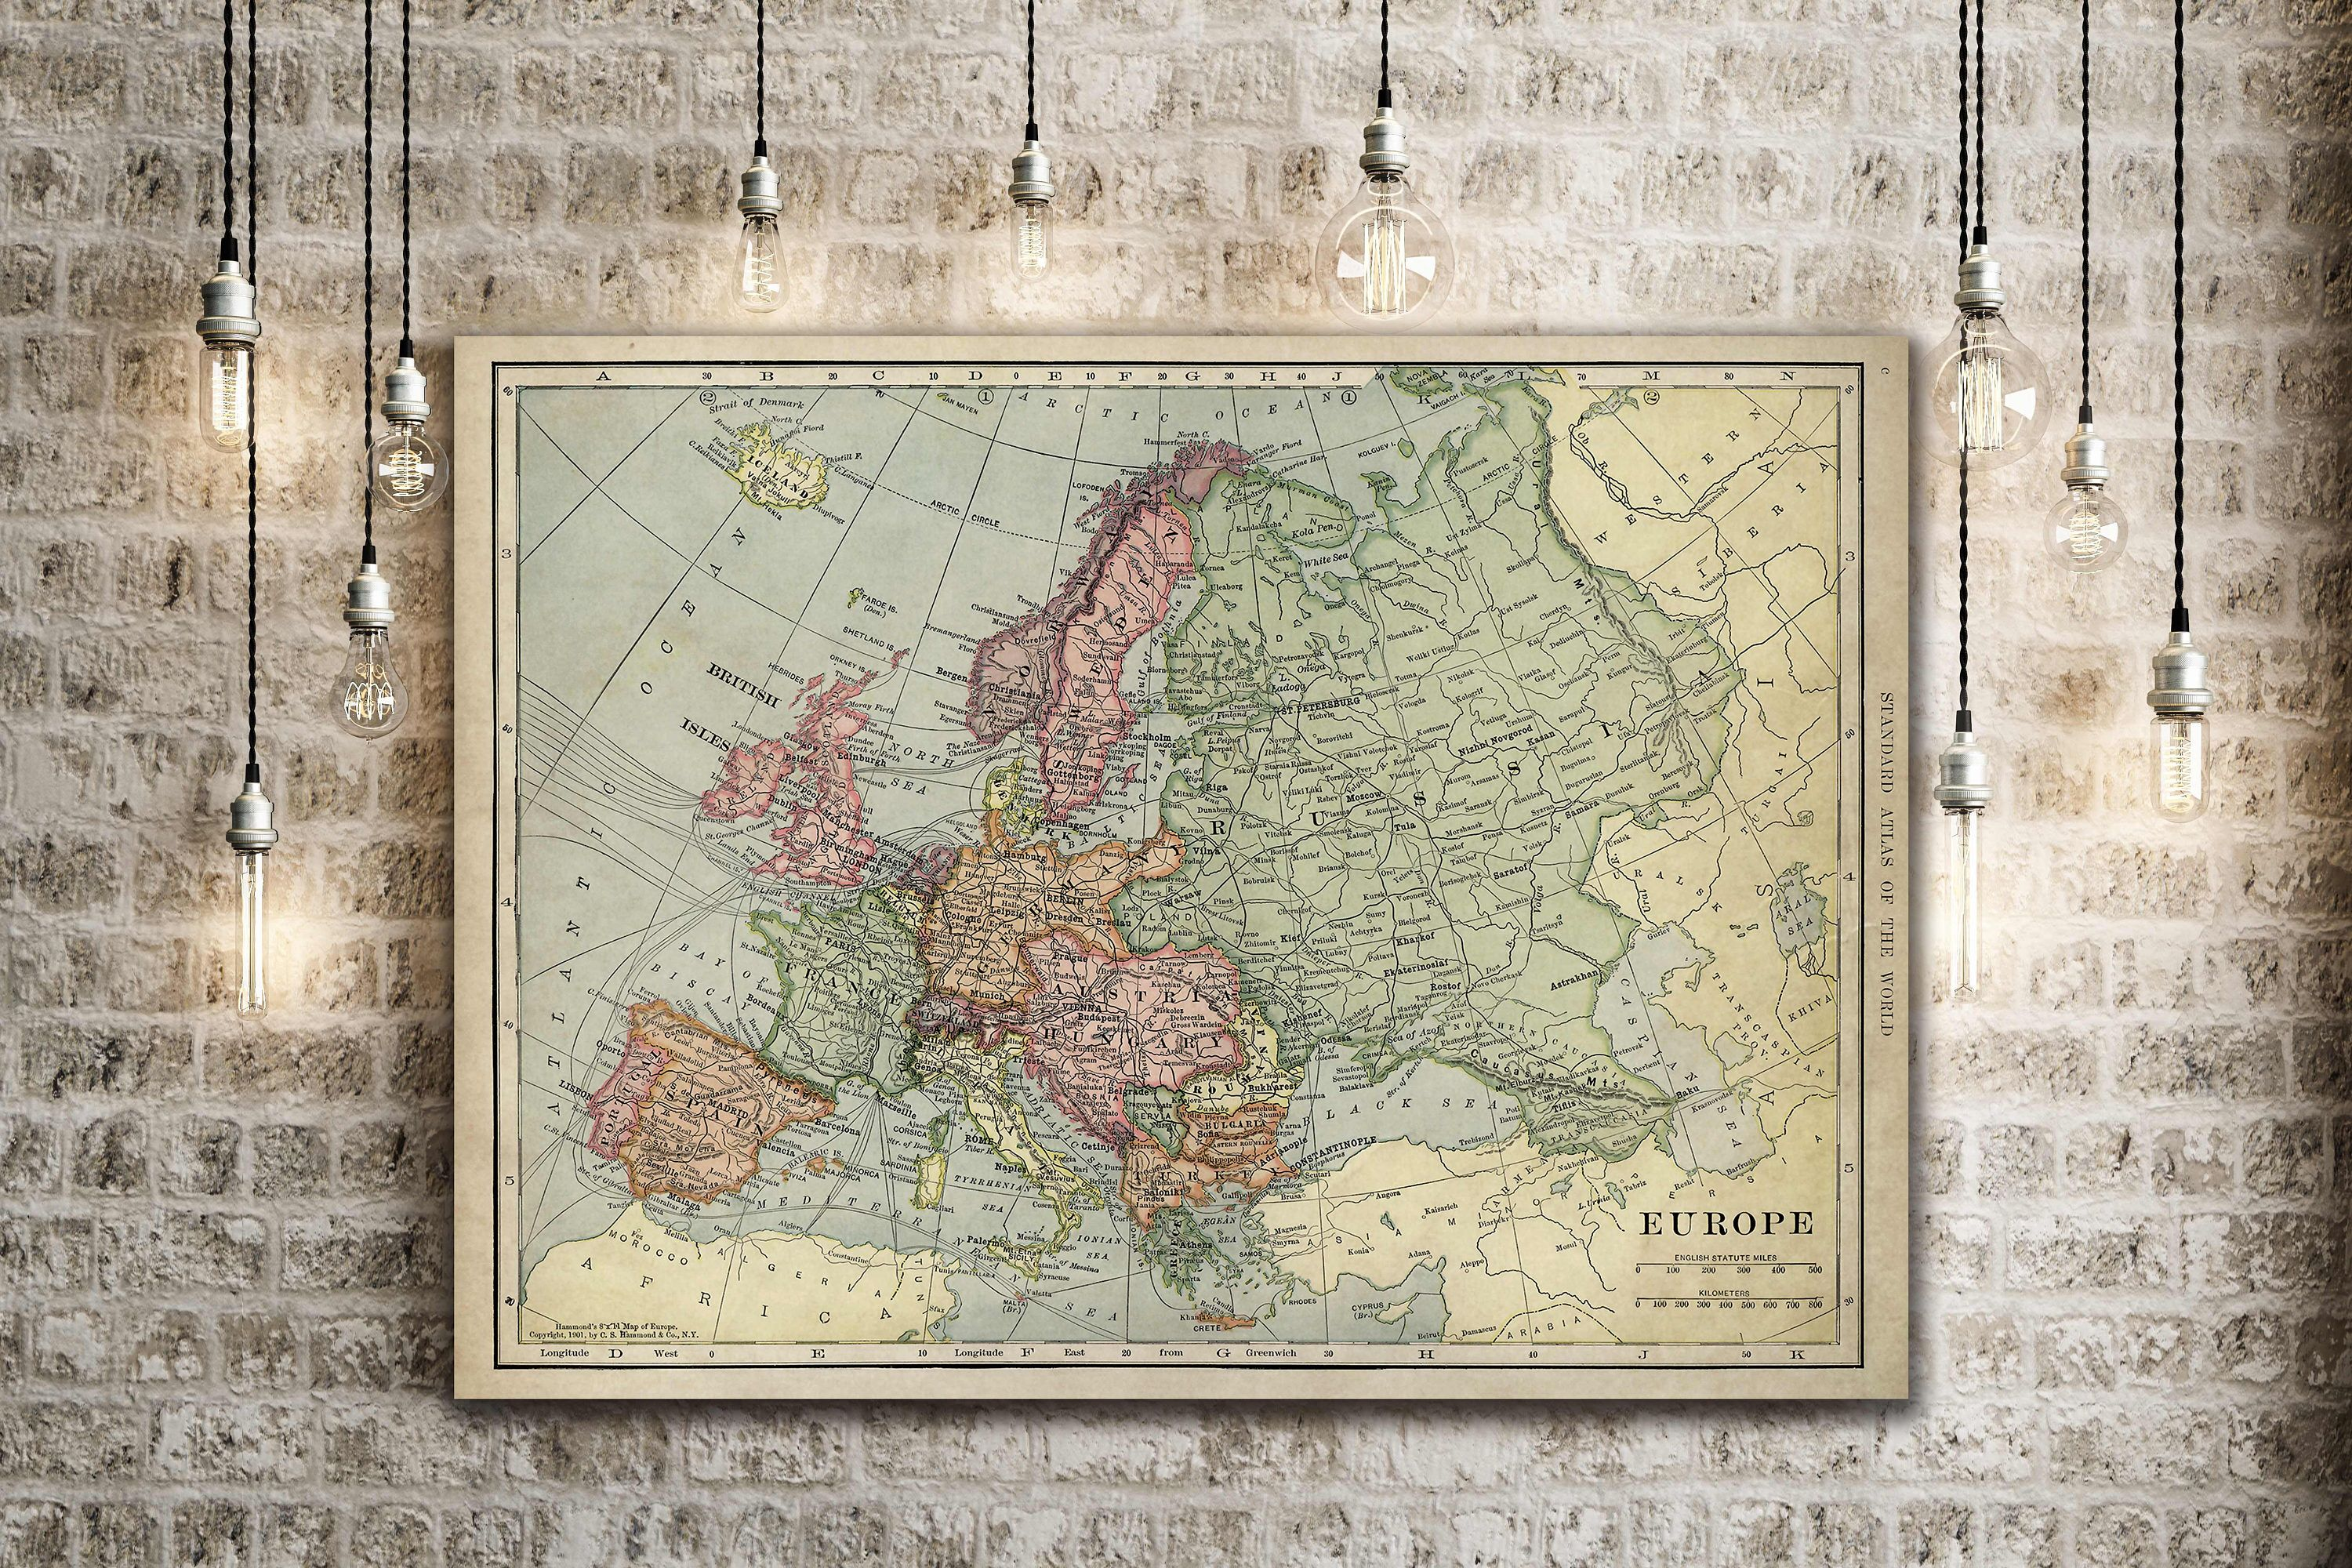 Old map of europe up to 43x 55 antique decor style decorative map old map of europe up to 43x 55 restoration hardware style decorative map vintage map of europe antique europe map europe wall art wall map by publicscrutiny Image collections